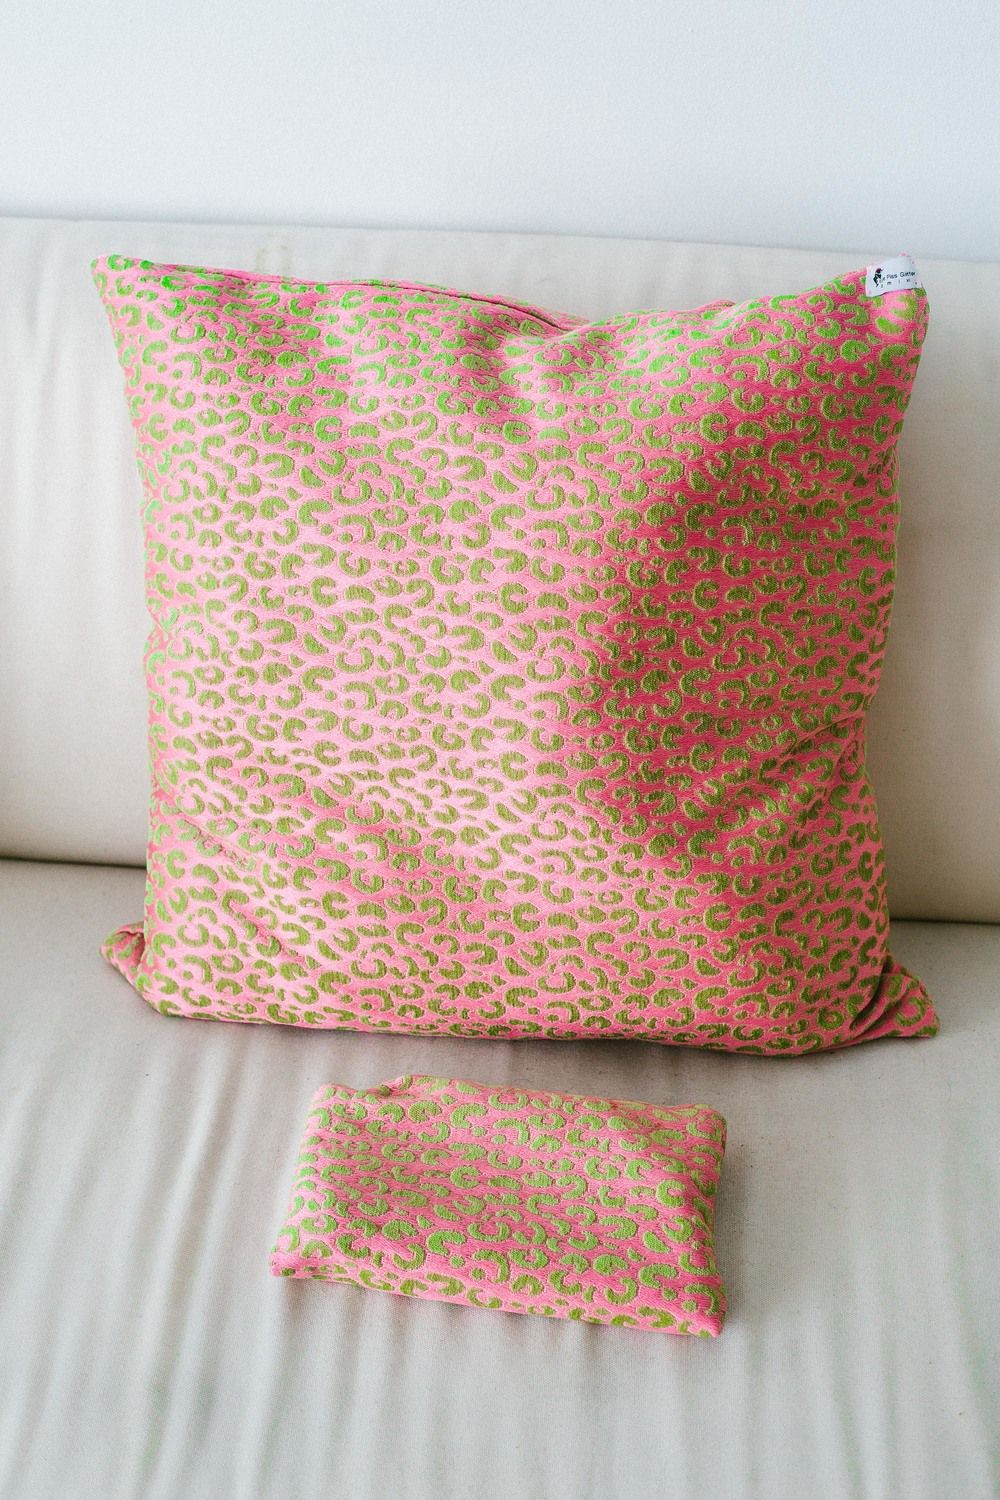 Tatalicious Pillow & Pouch.